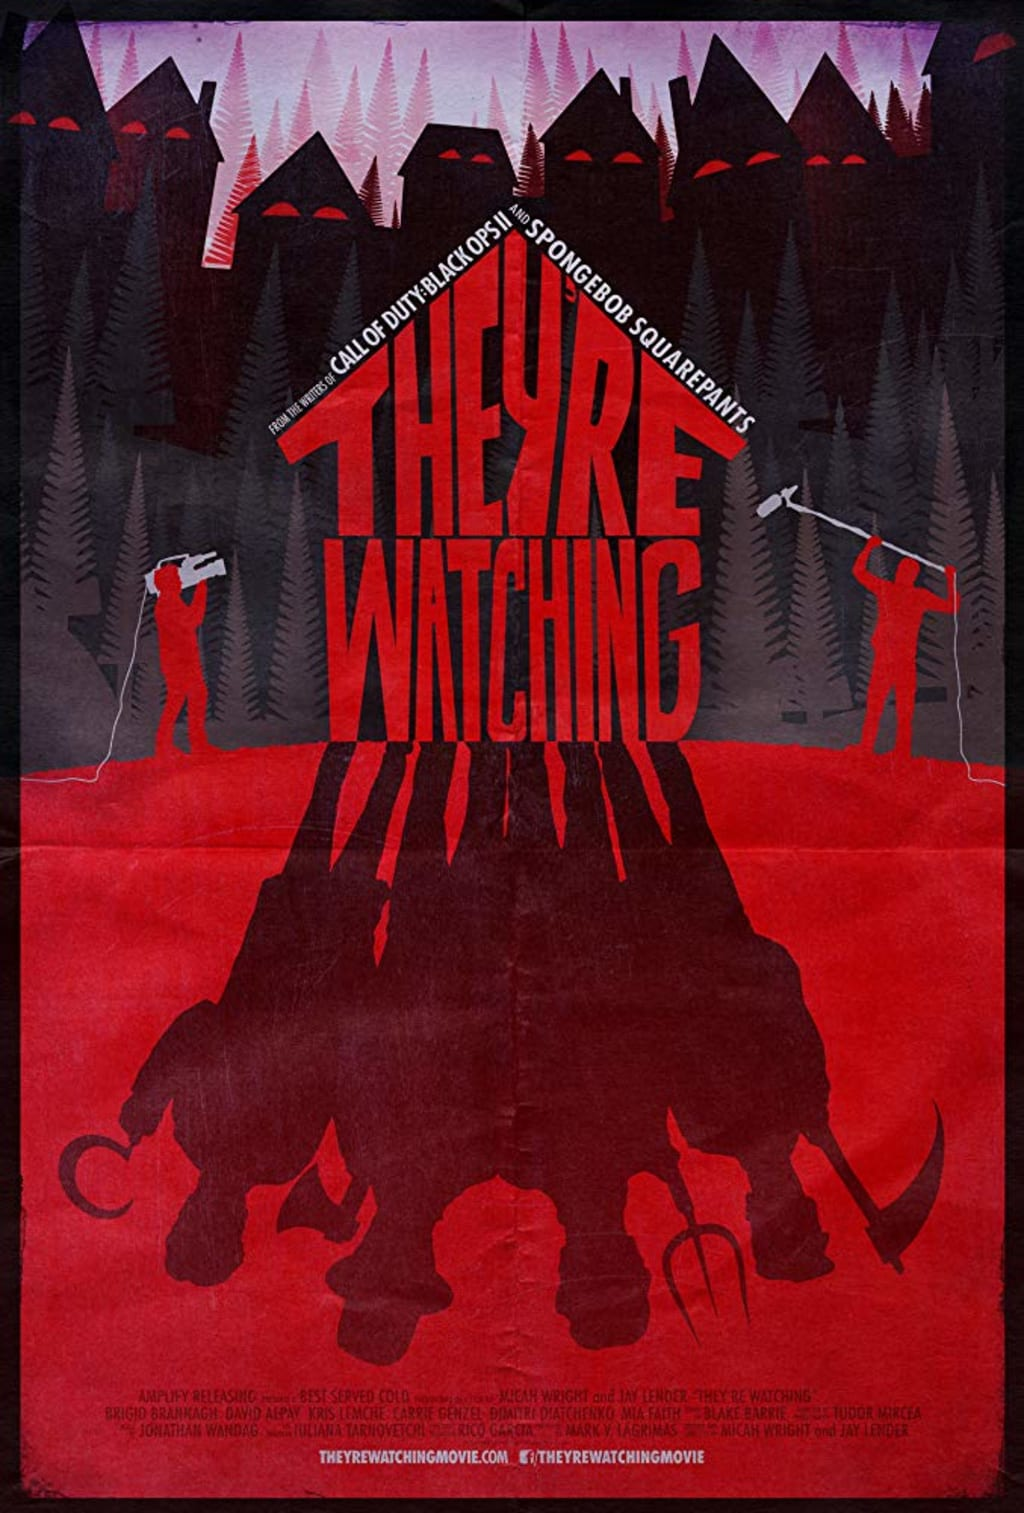 Reed Alexander's Horror Review of 'They're Watching' (2016)